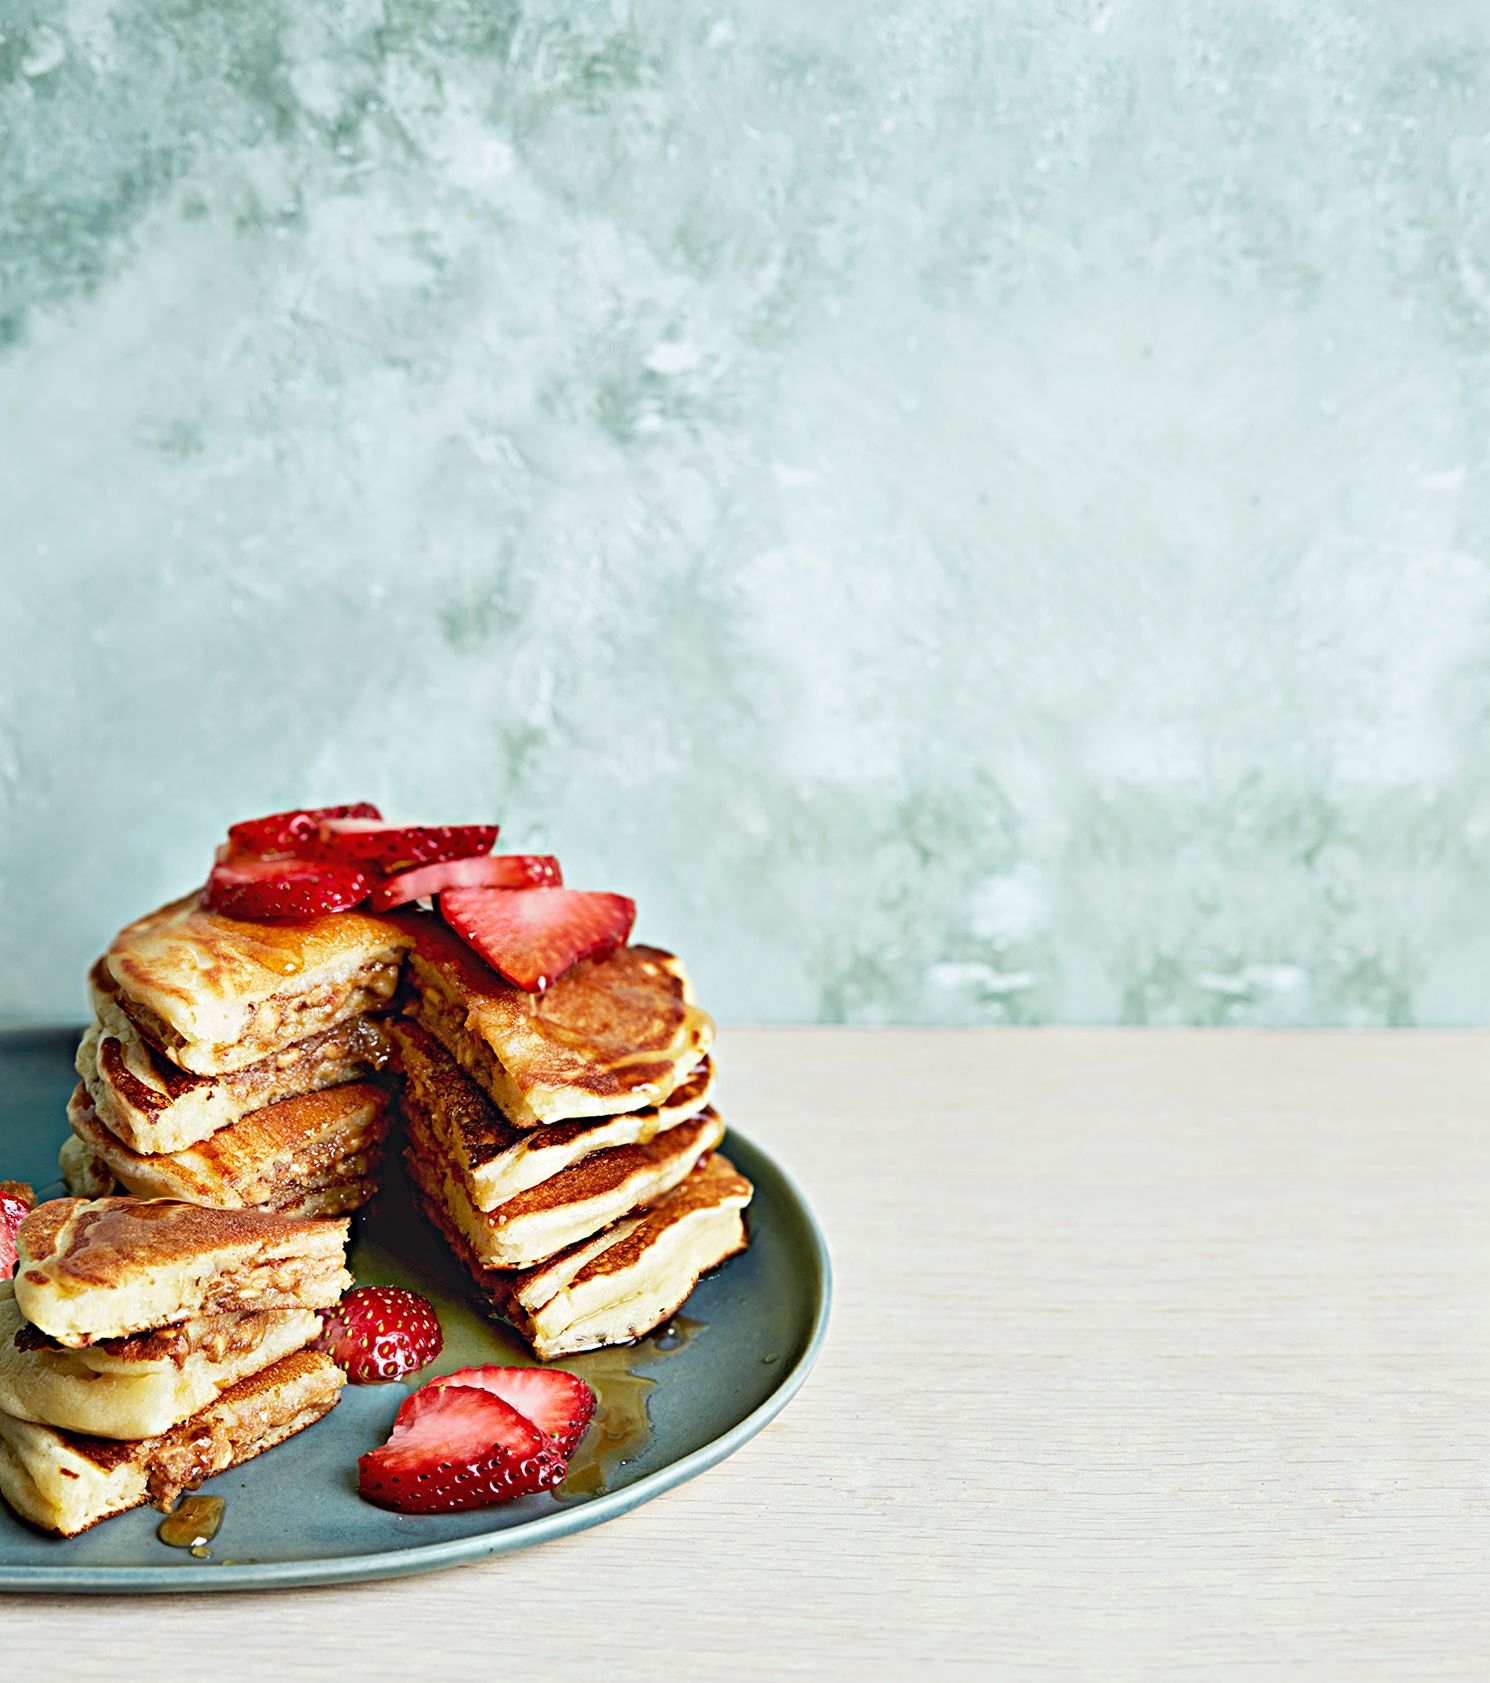 peanut butter and berries pancakes